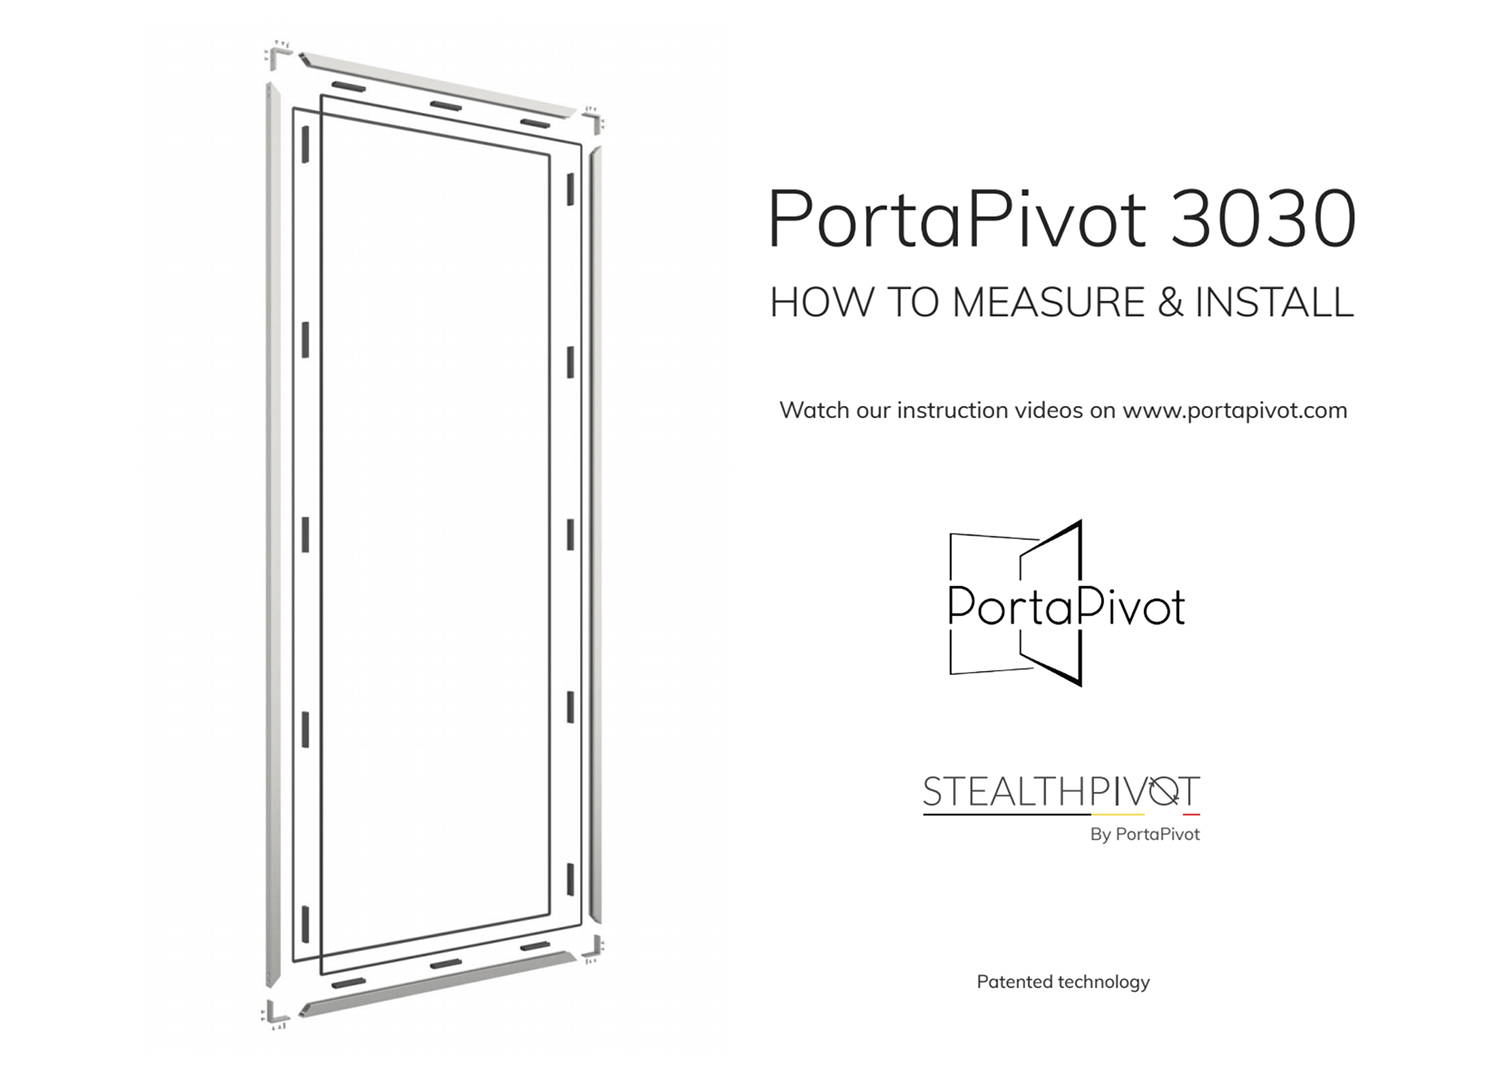 Portapivot 3030 how to measure and install manual